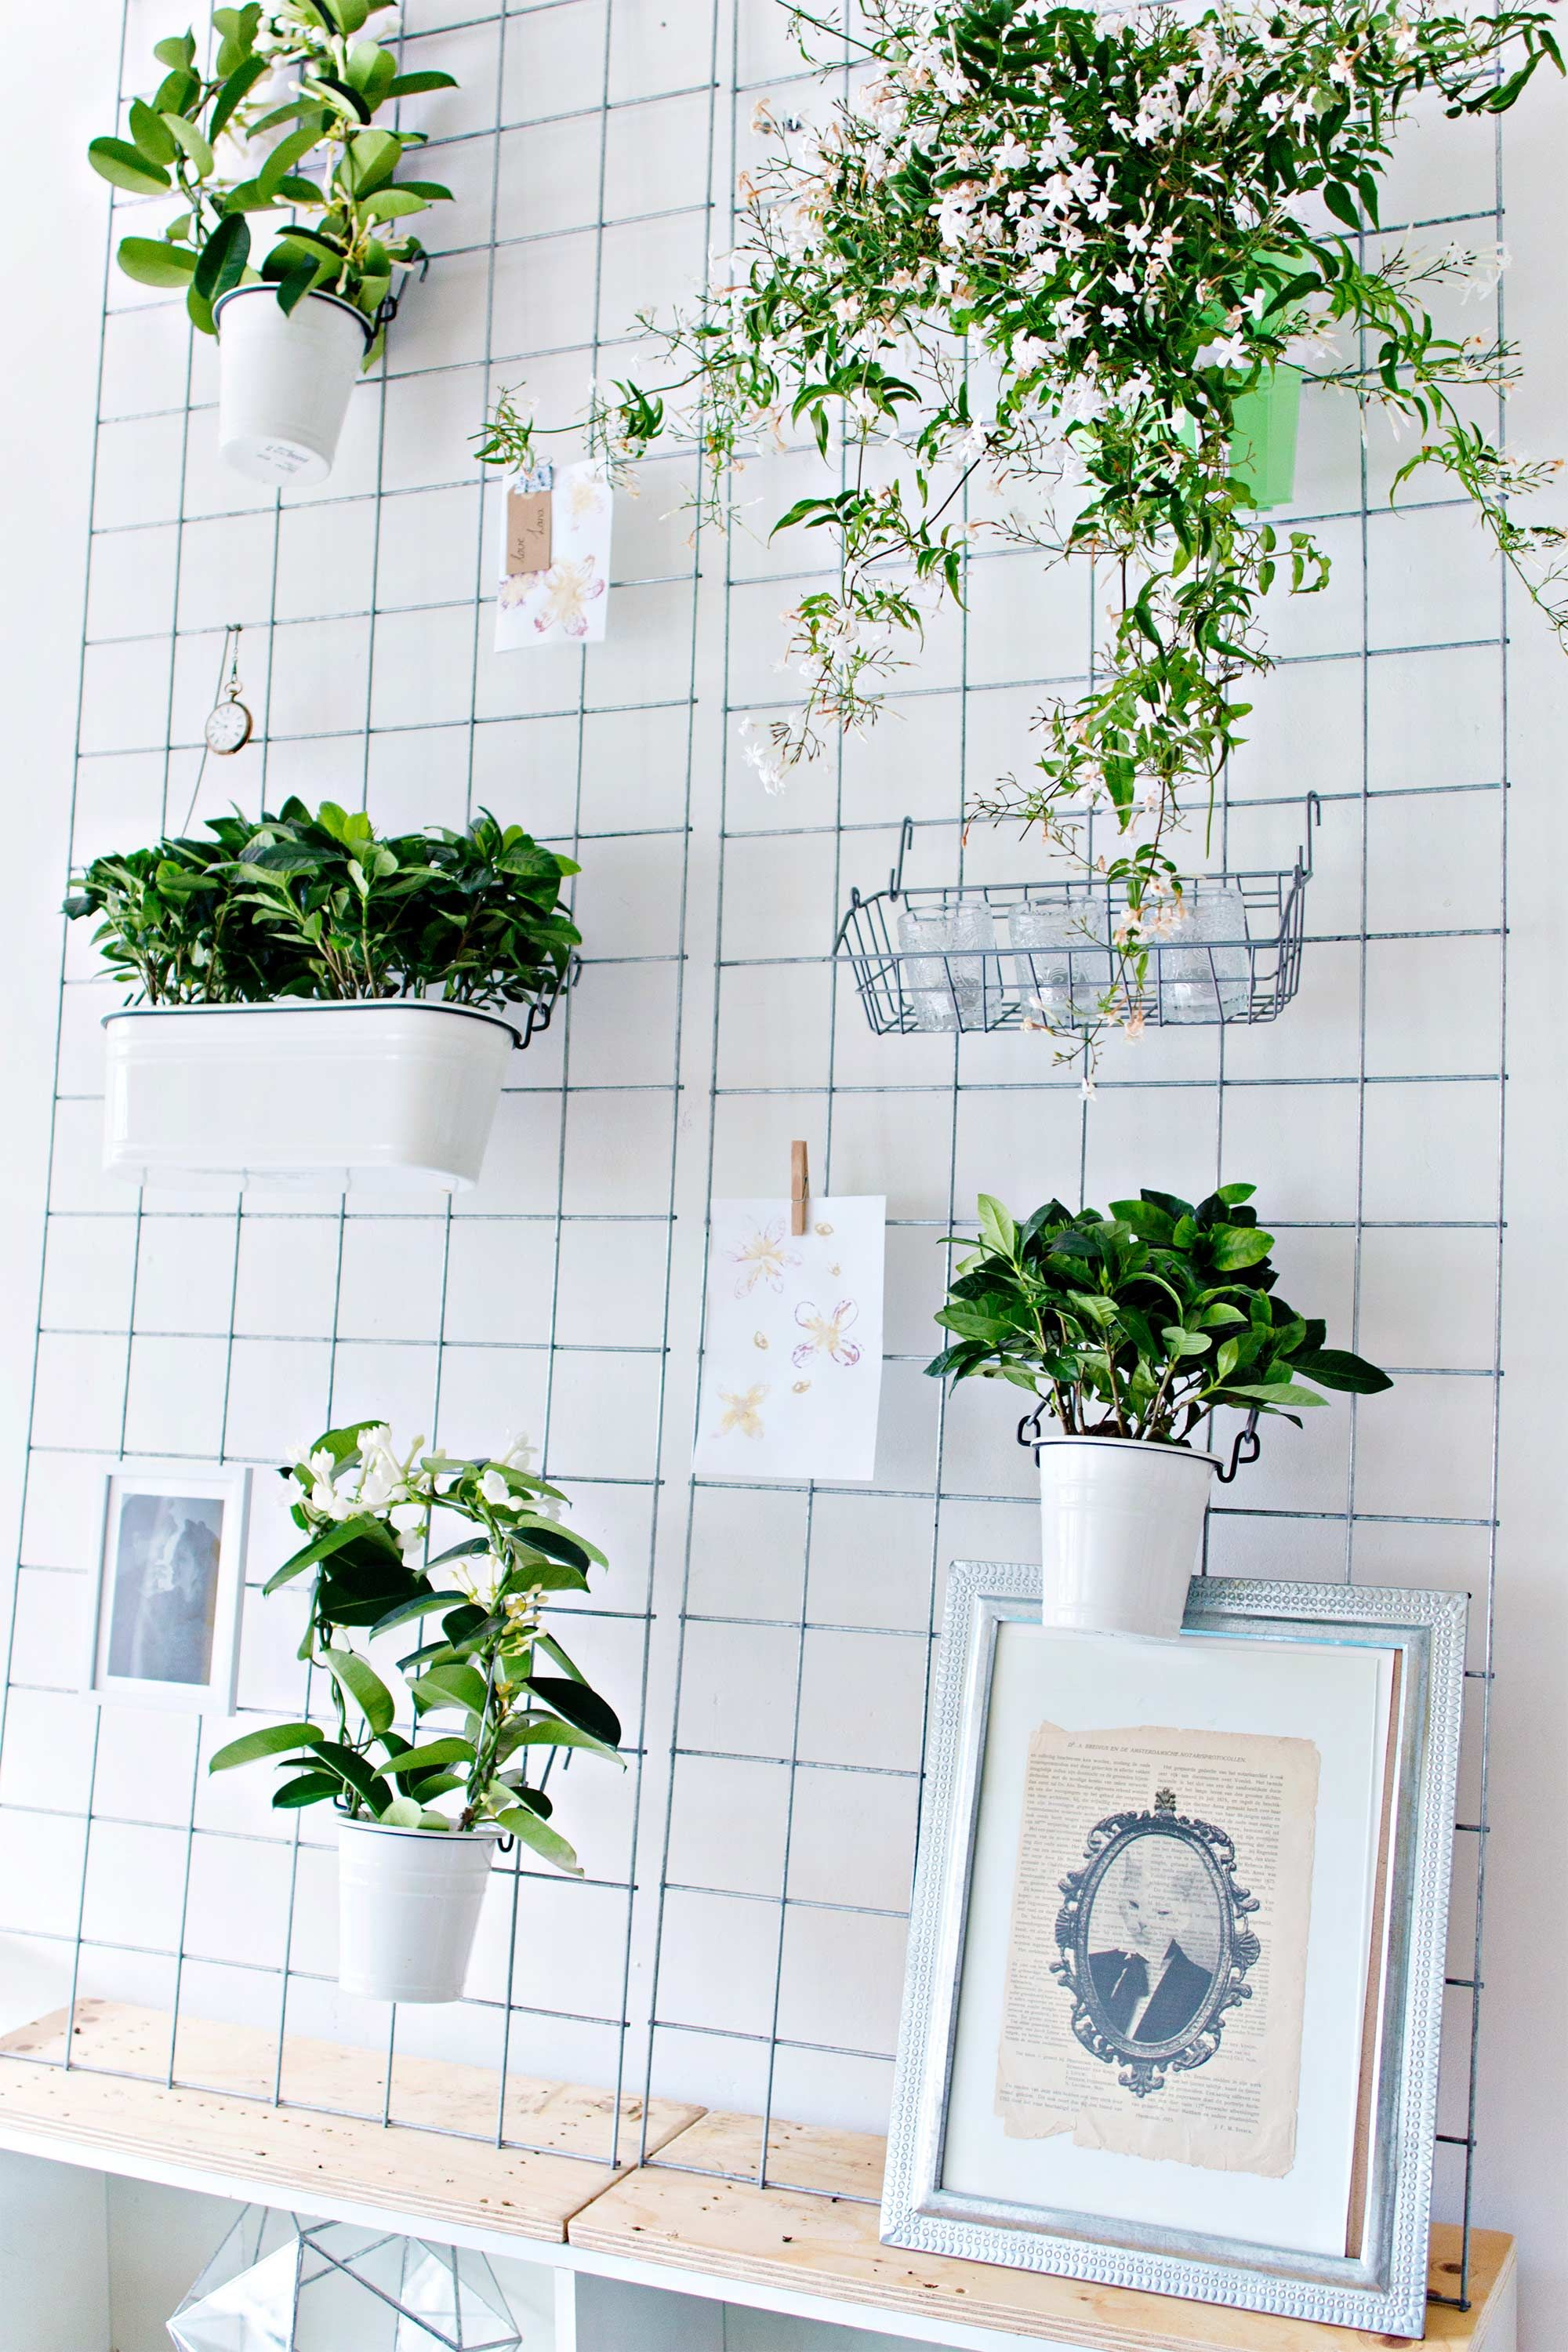 Wandrek Planten Wandrek Room Inspiration Living Wall Planter Plant Decor En